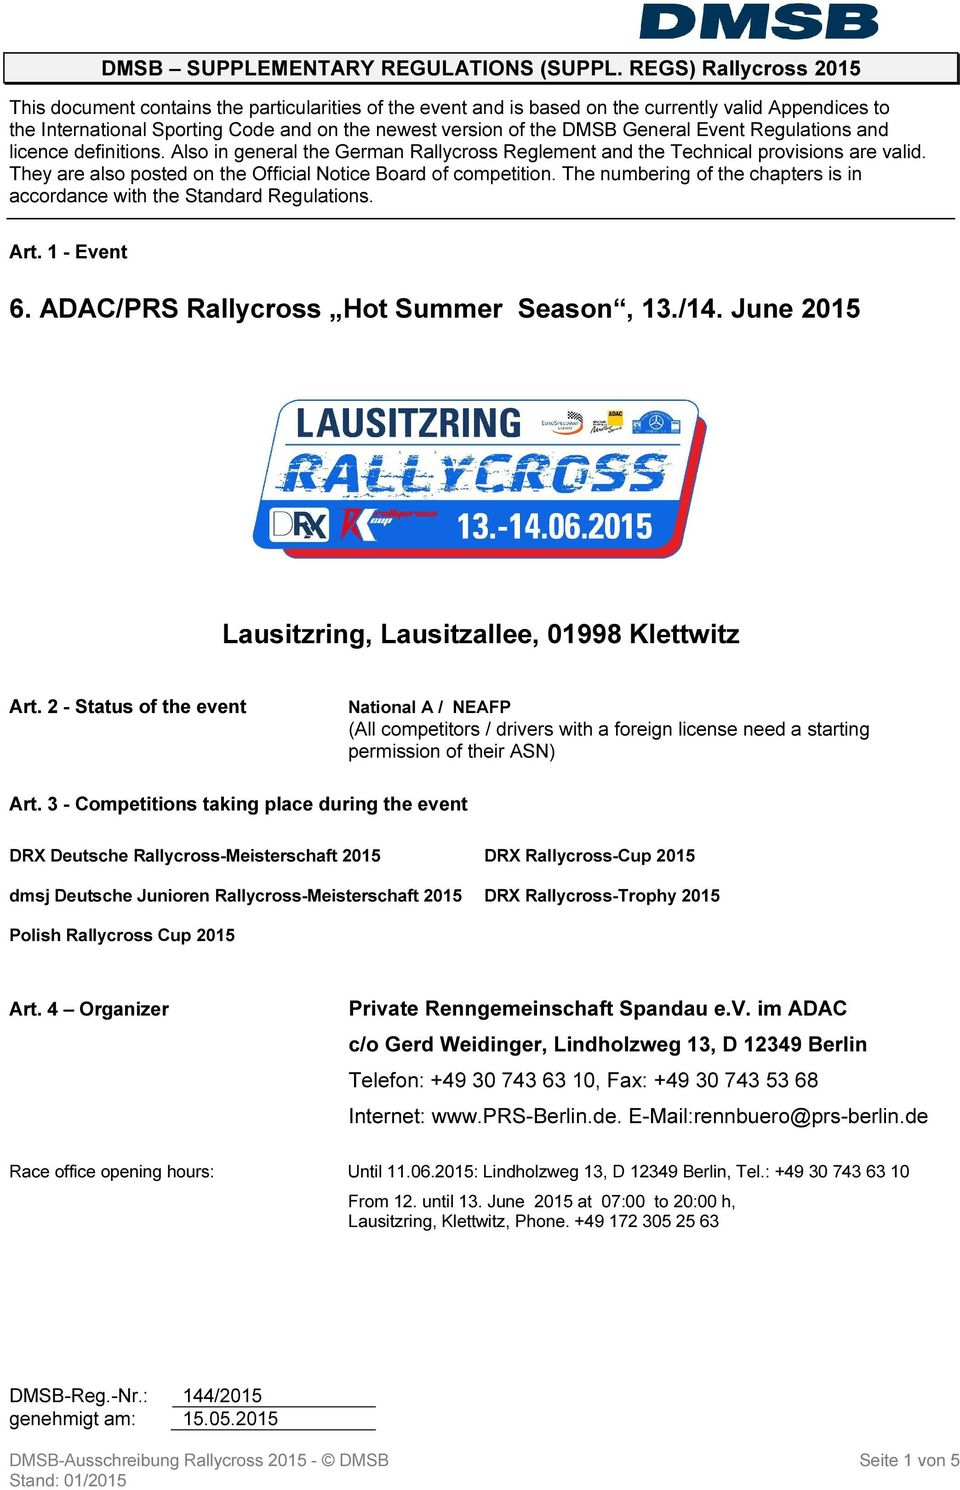 General Event Regulations and licence definitions. Also in general the German Rallycross Reglement and the Technical provisions are valid.